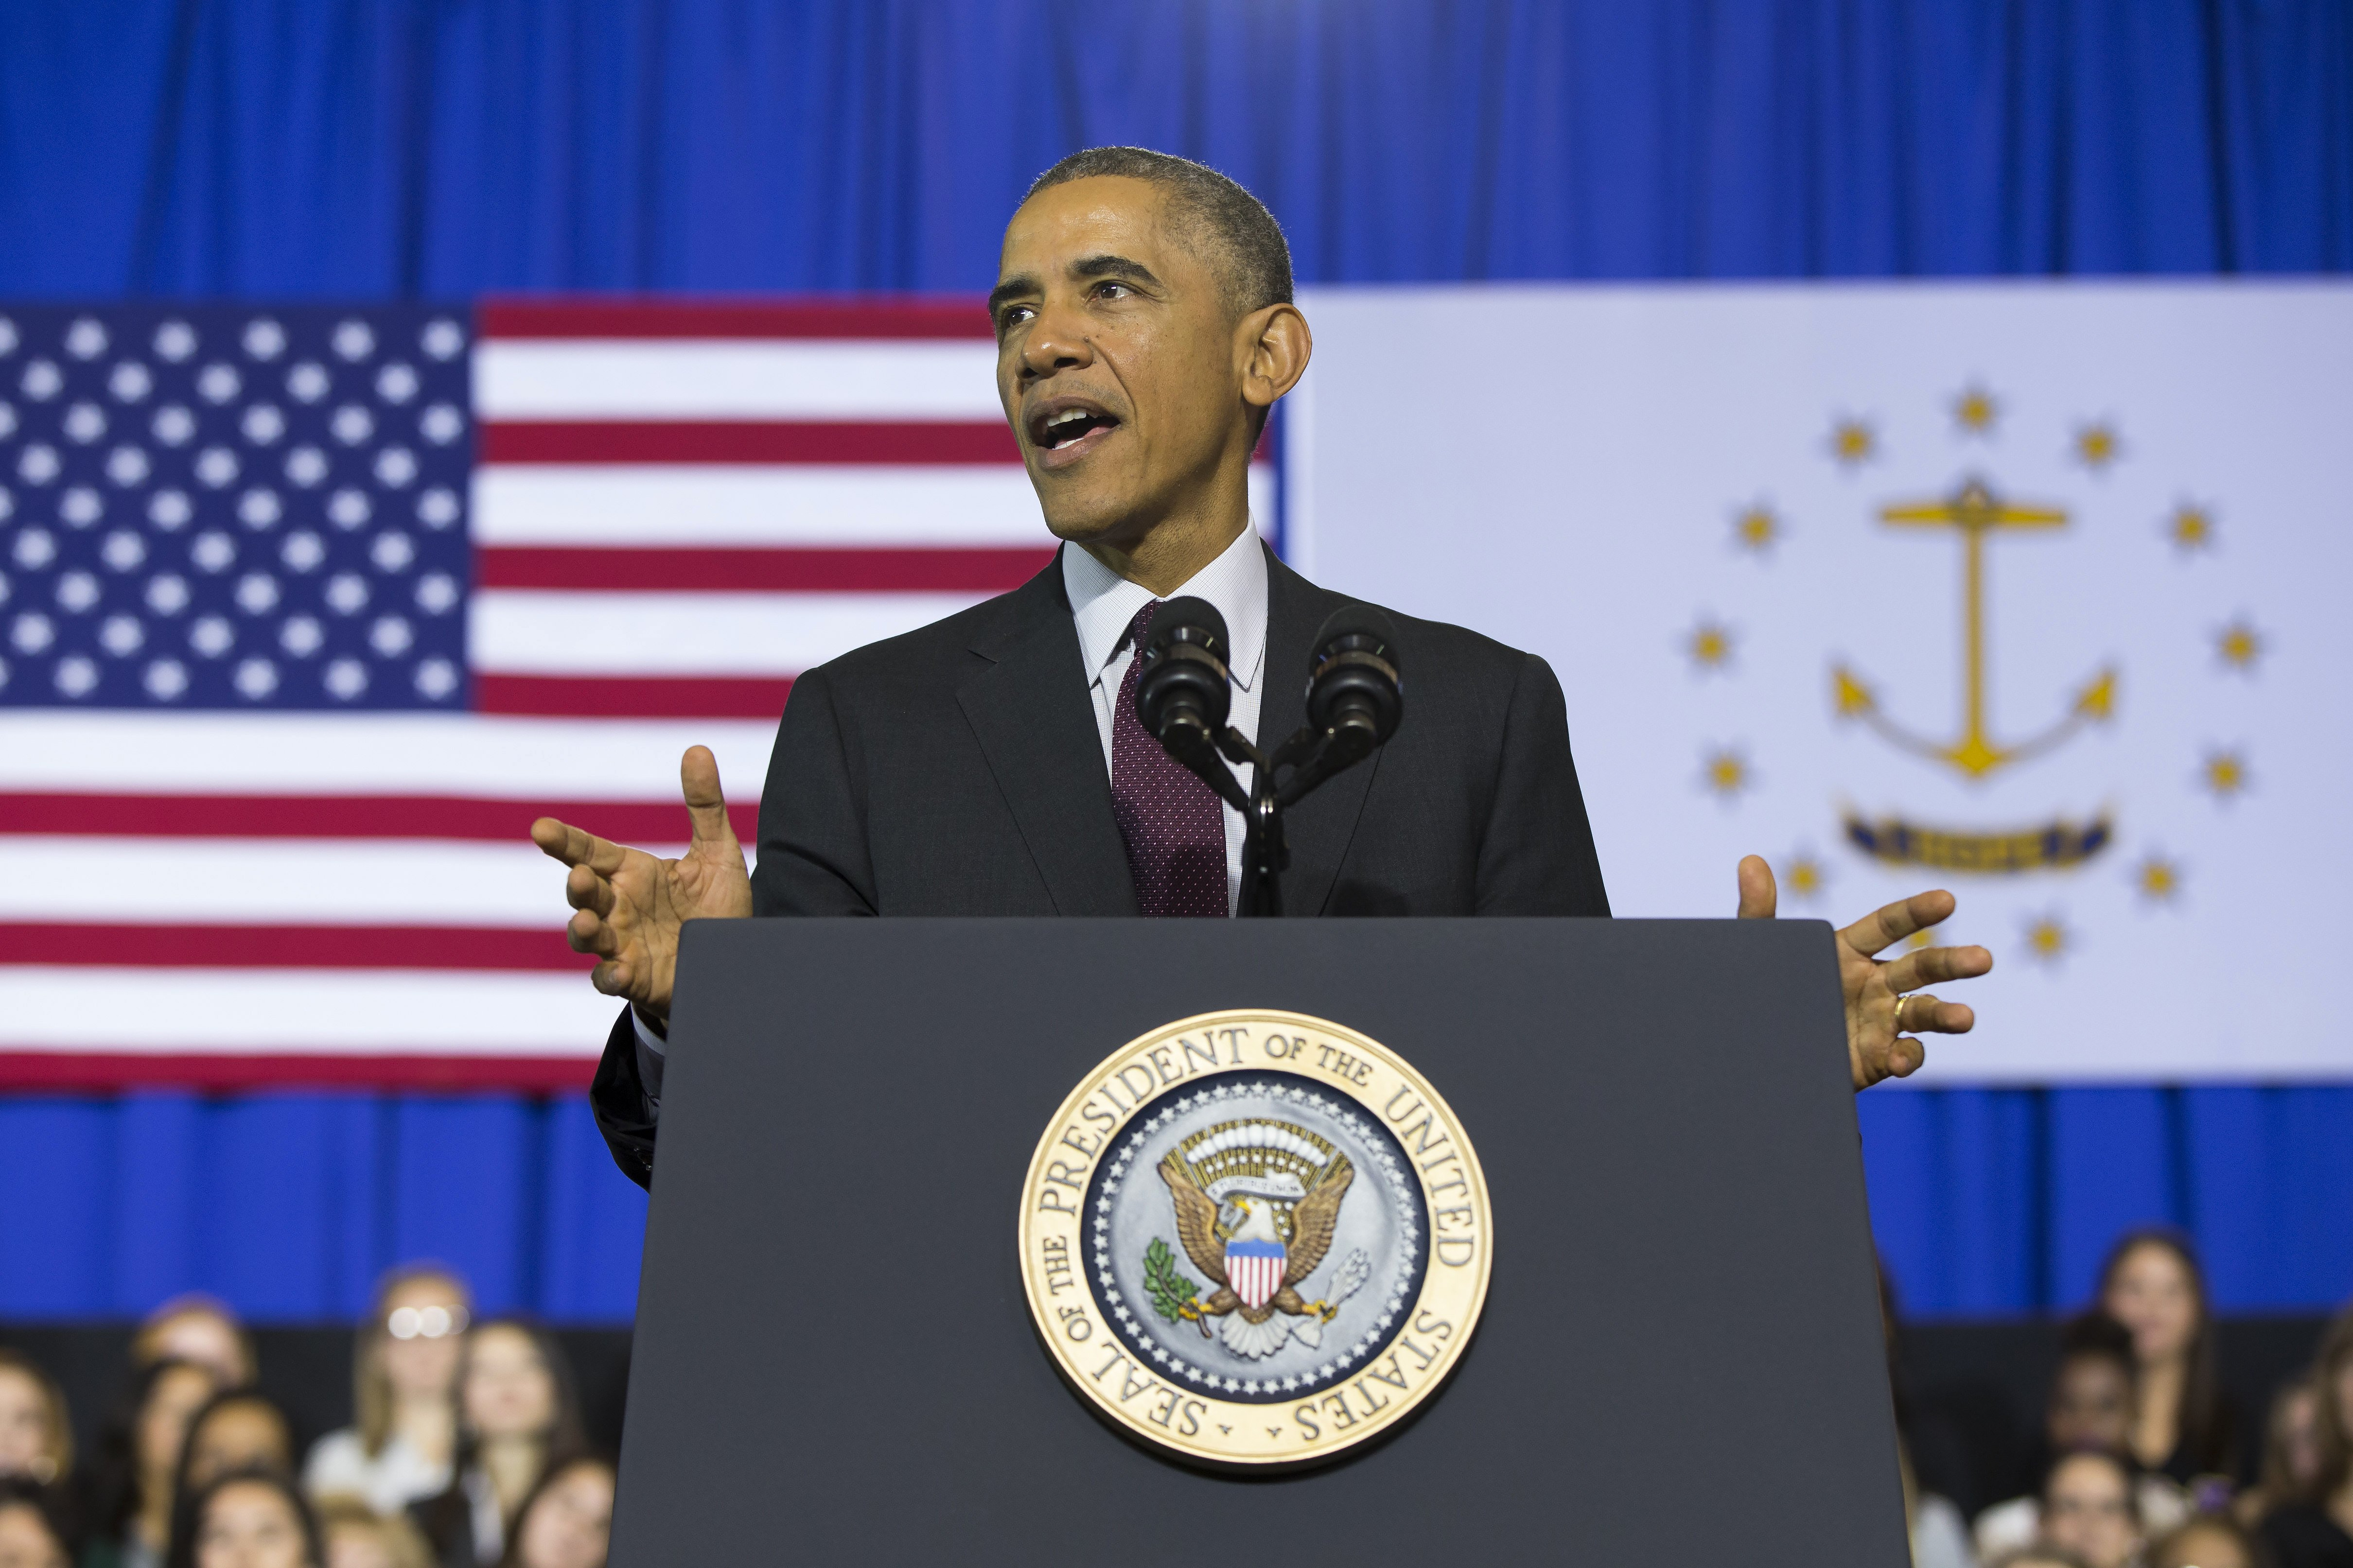 President Barack Obama speaks about the economy at Rhode Island College in Providence, R.I. on Oct. 31, 2014.